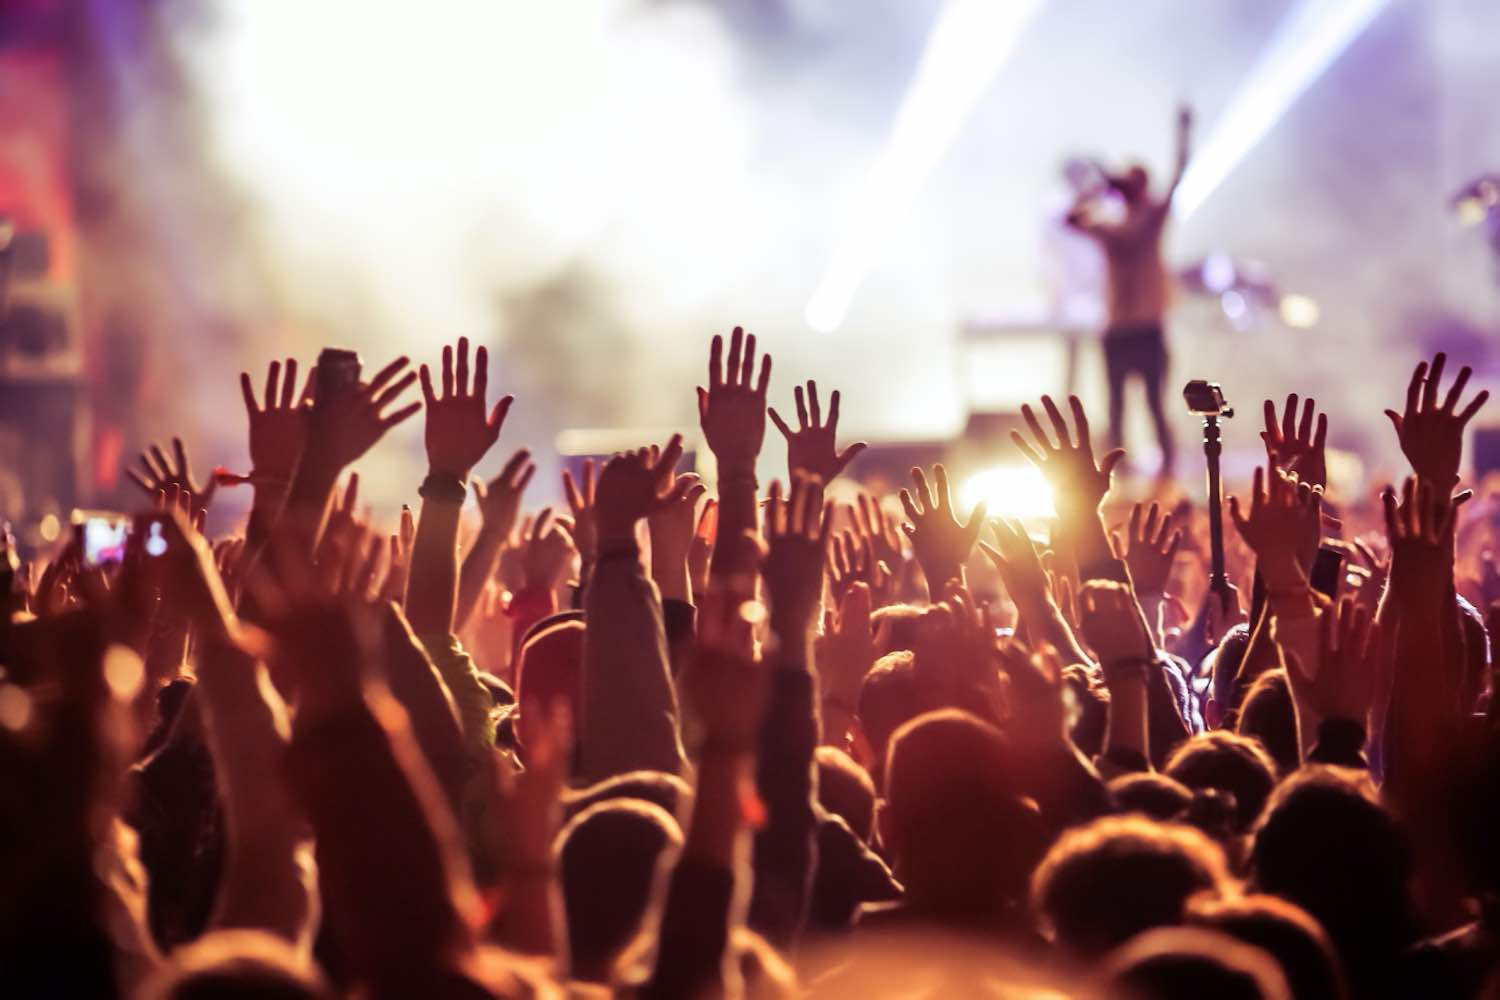 When Should You Buy Concert Tickets?